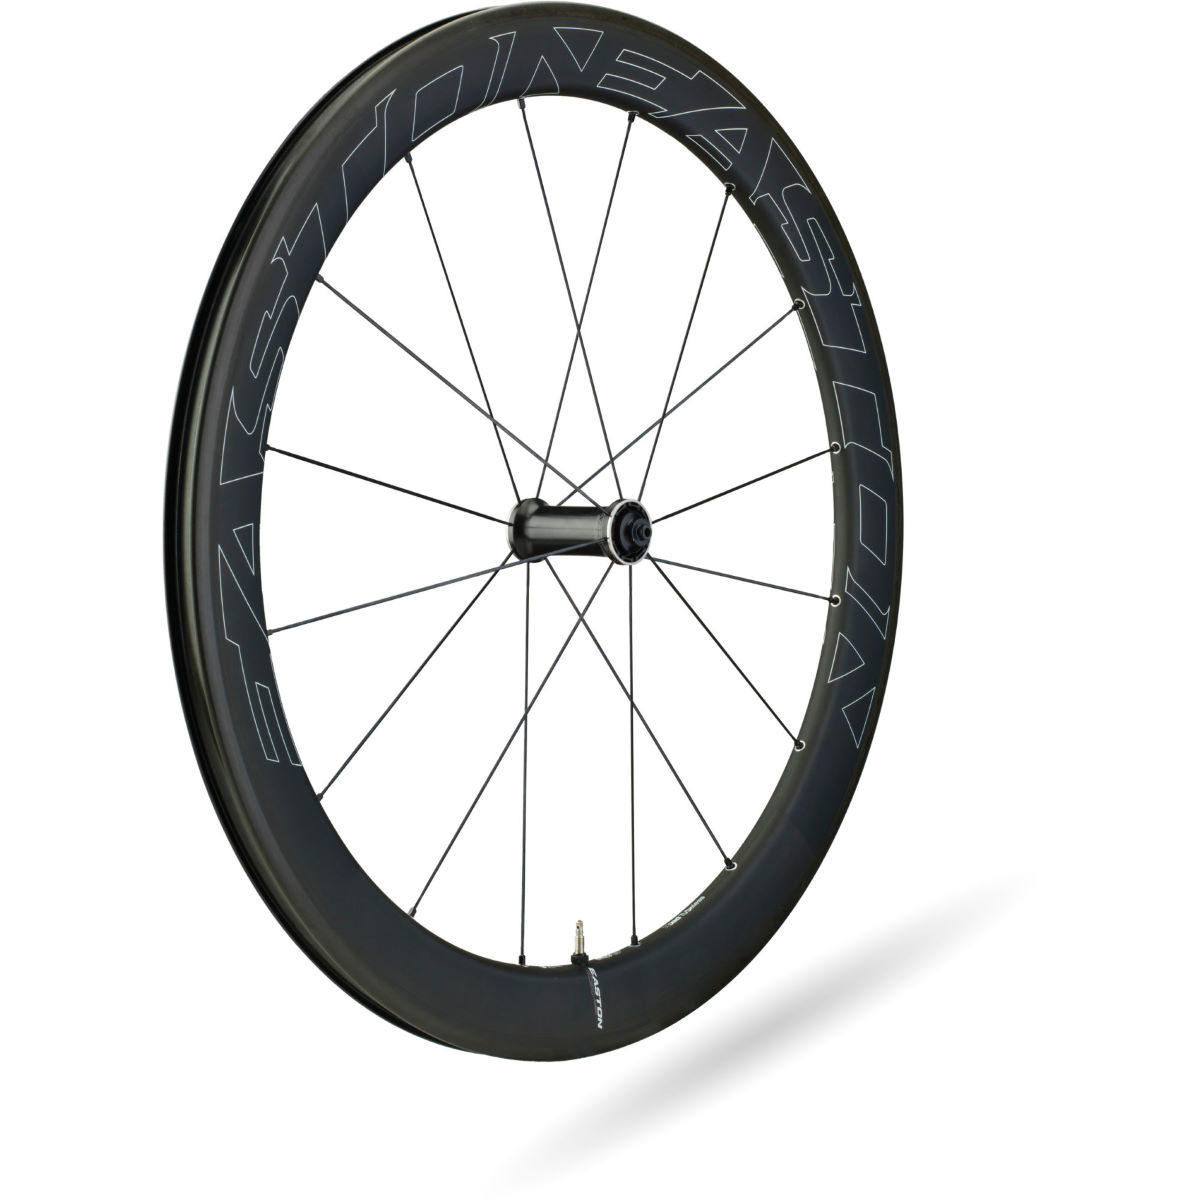 Roue avant Easton EC90 Aero Tubeless (carbone) - 700c Noir